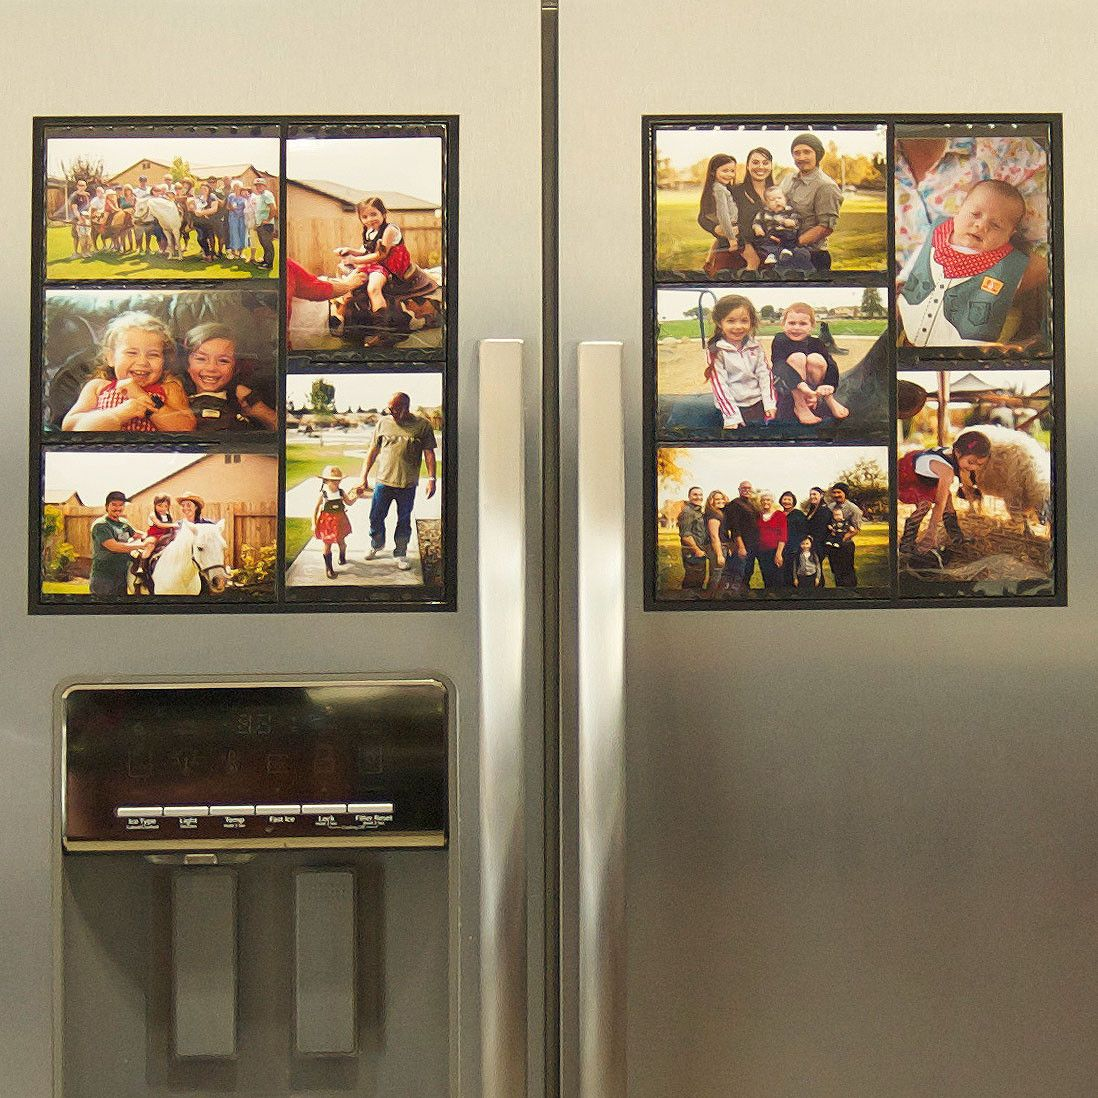 Wind & Sea Magnetic Picture Frame Collage For Refrigerator - Holds ...